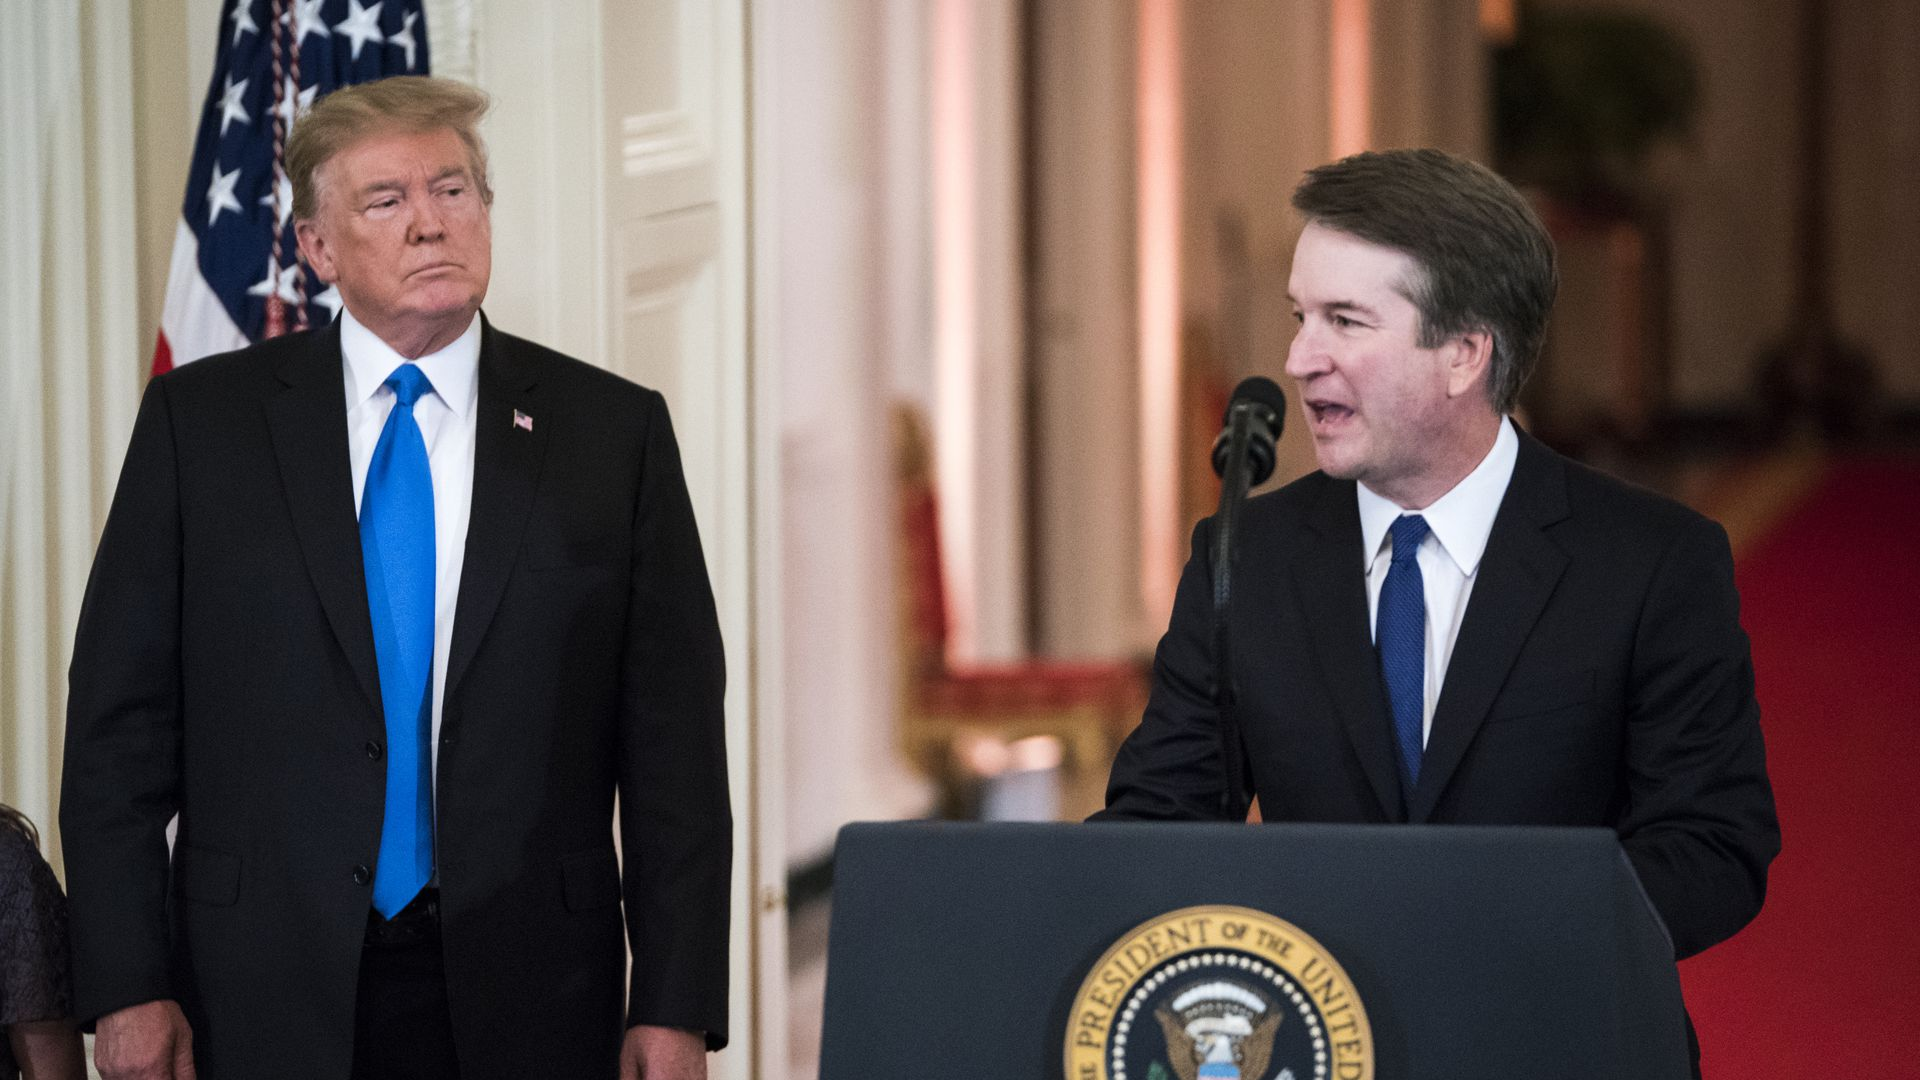 President Donald Trump listens to Judge Brett M. Kavanaugh. Photo: Jabin Botsford/The Washington Post via Getty Images